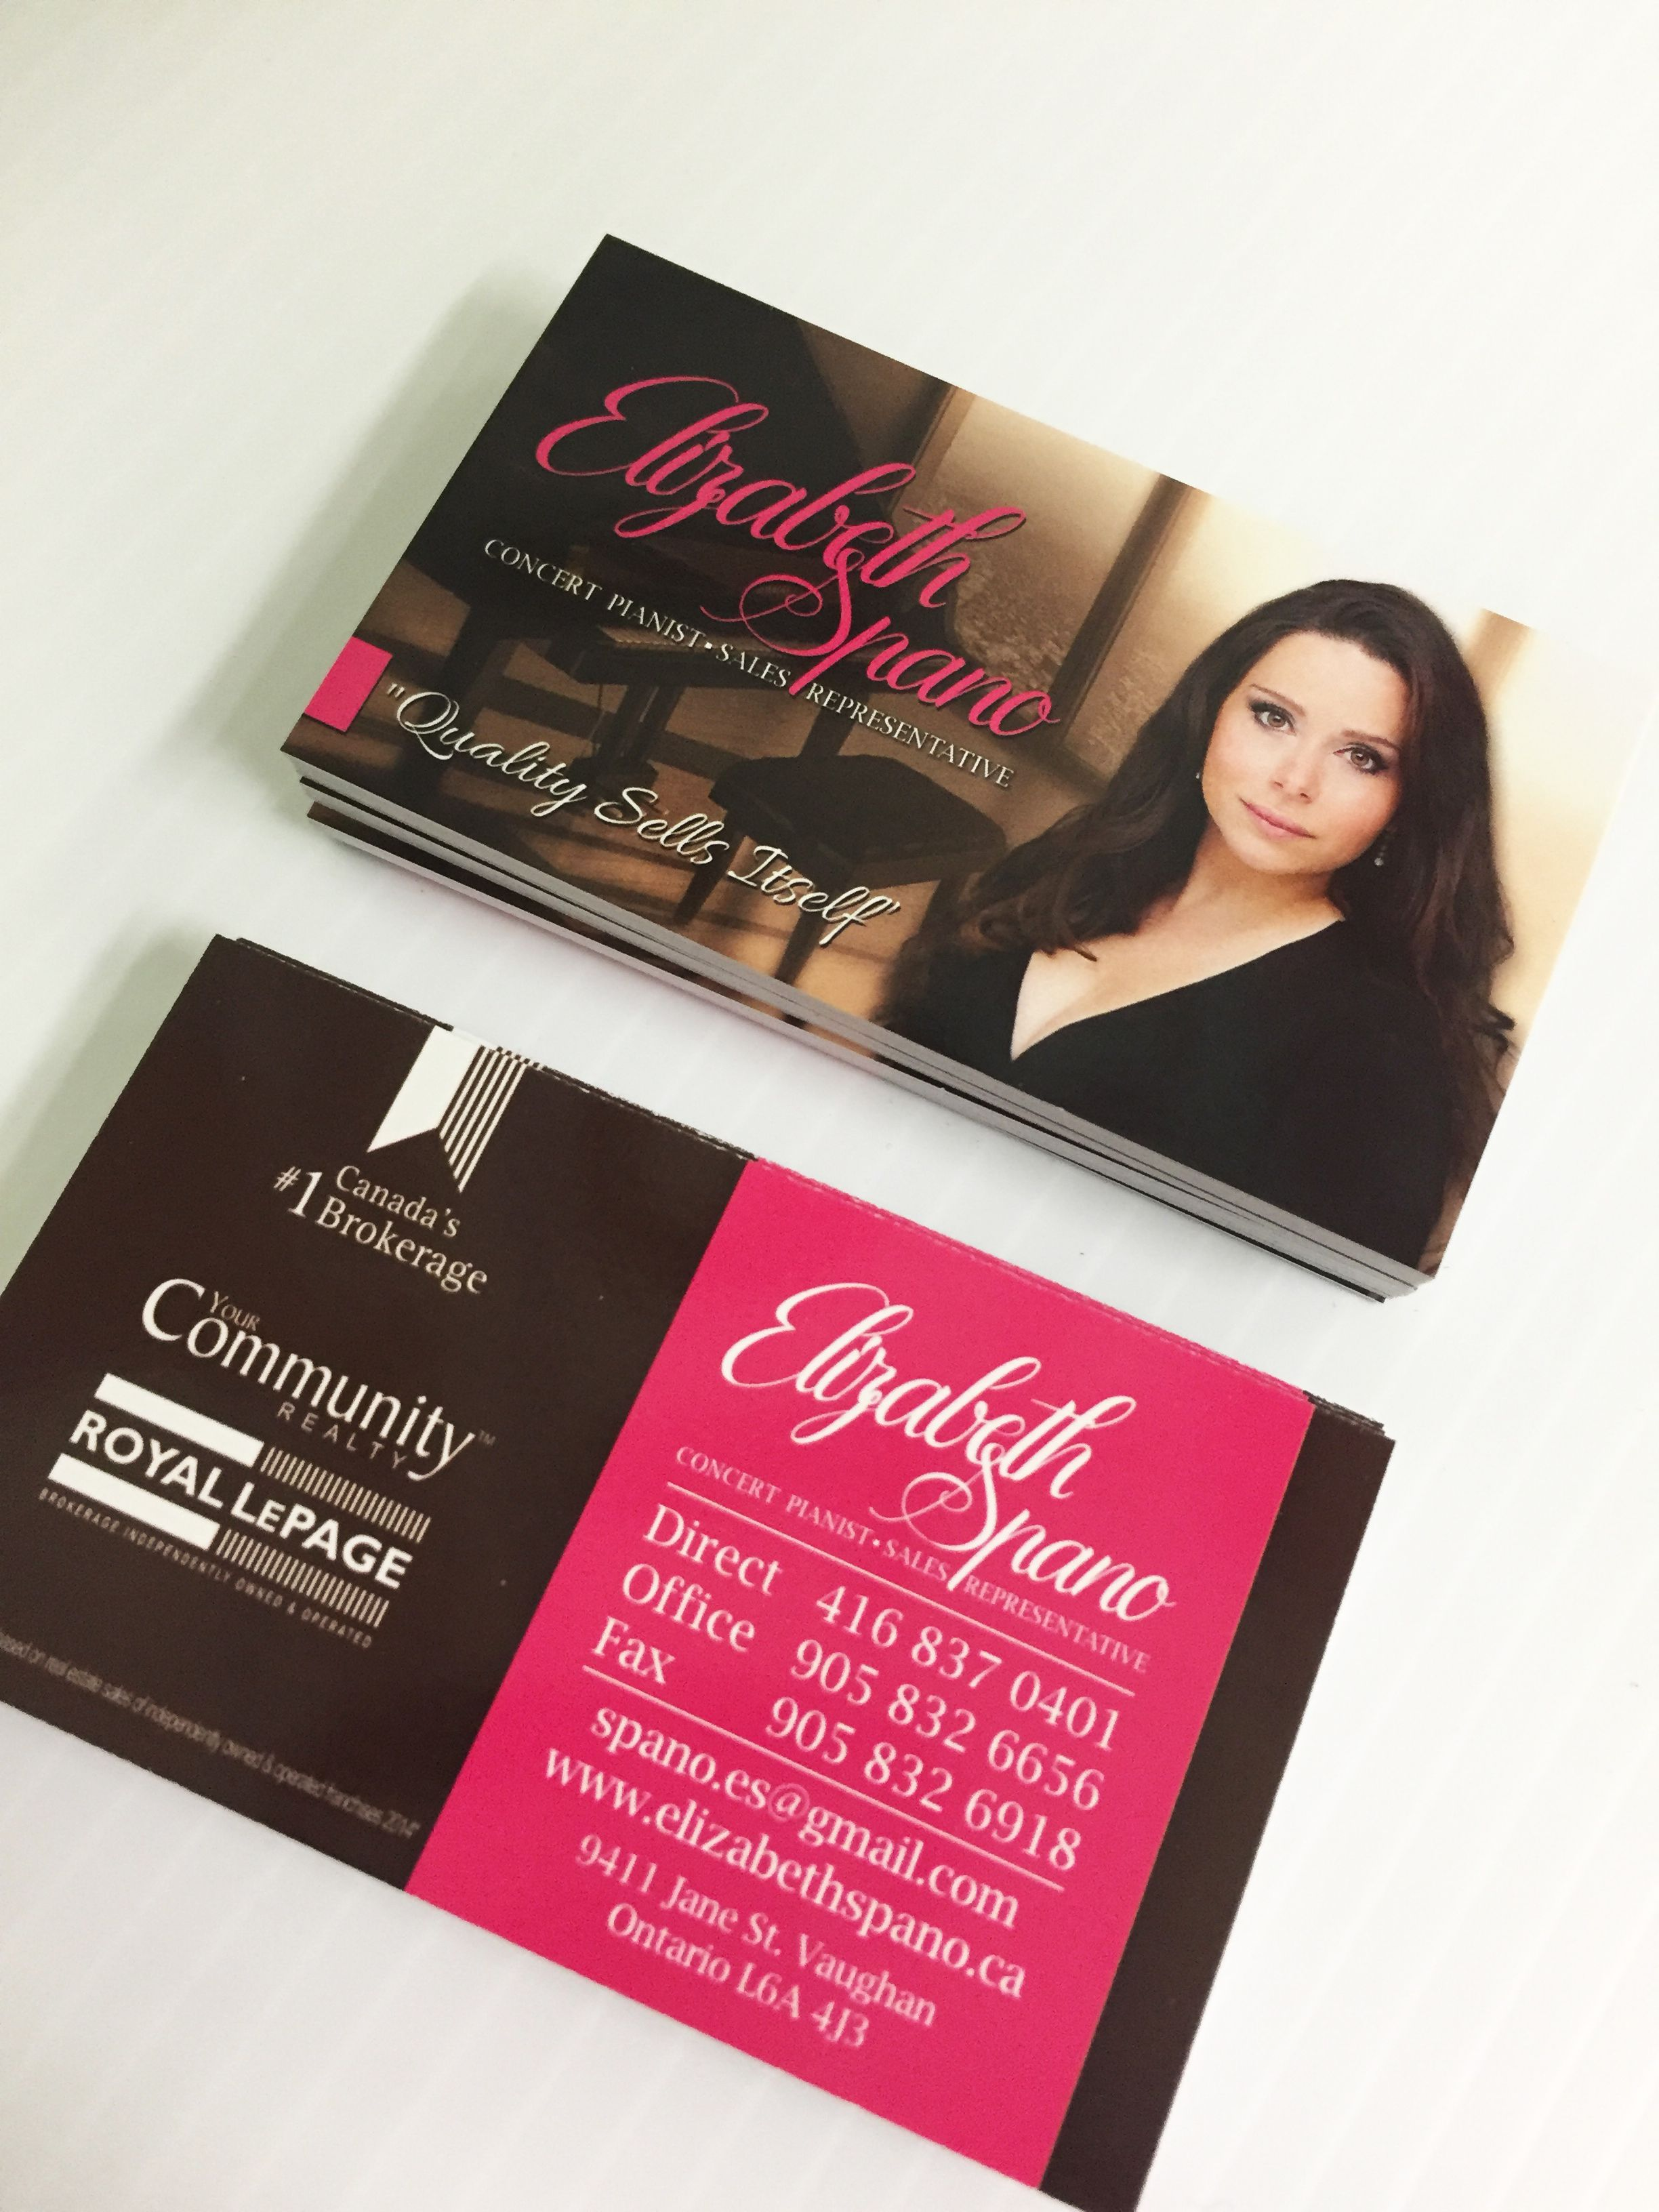 Royal lepage customized business cards for a realtor and pianist royal lepage customized business cards for a realtor and pianist sweetprint alramifo Gallery